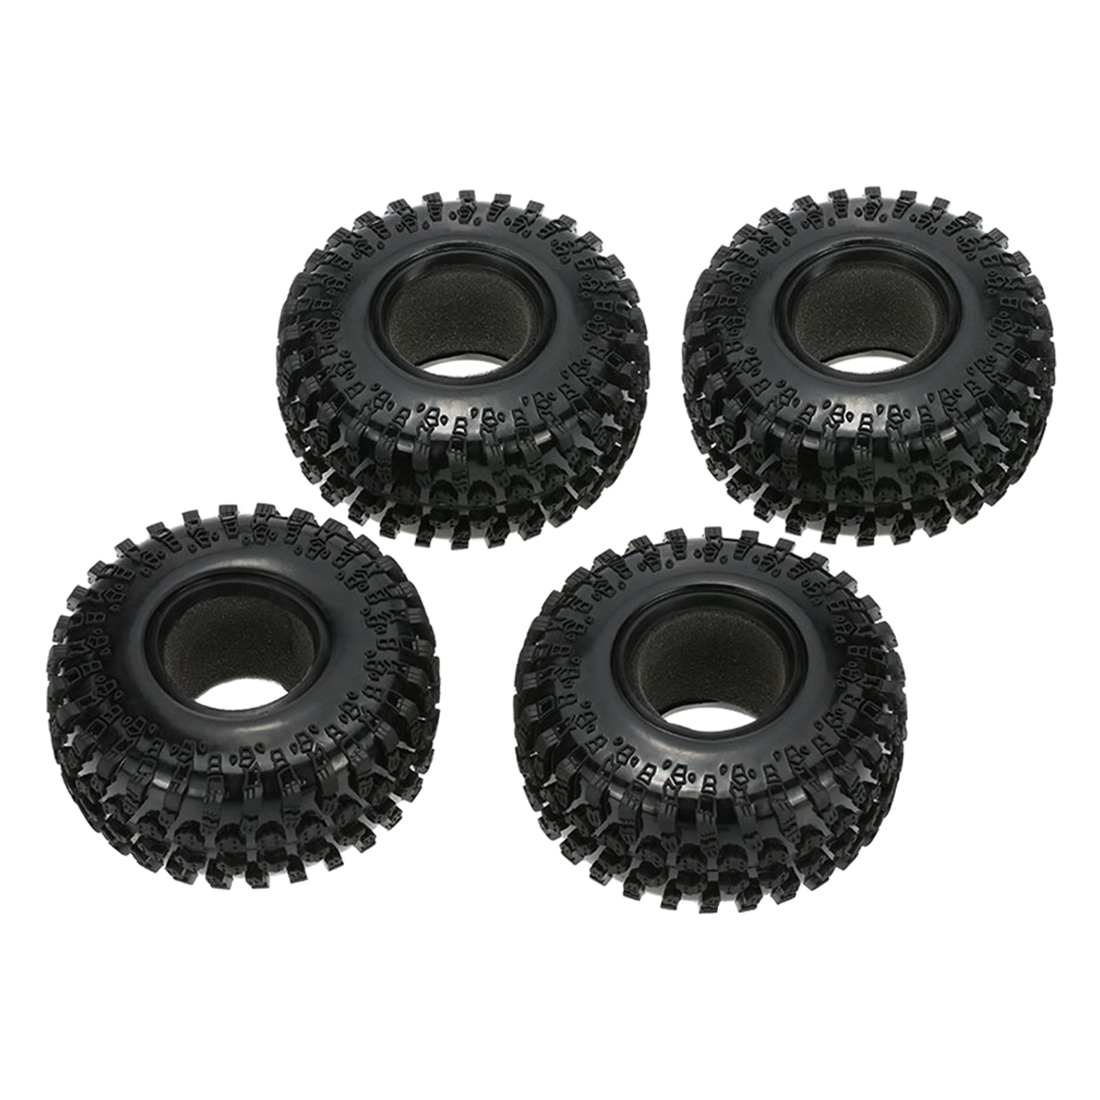 4 X 2.2 125mm 1/10 Scale Tires for RC4WD Axial SCX10 RC Rock Crawler Assemble Tool